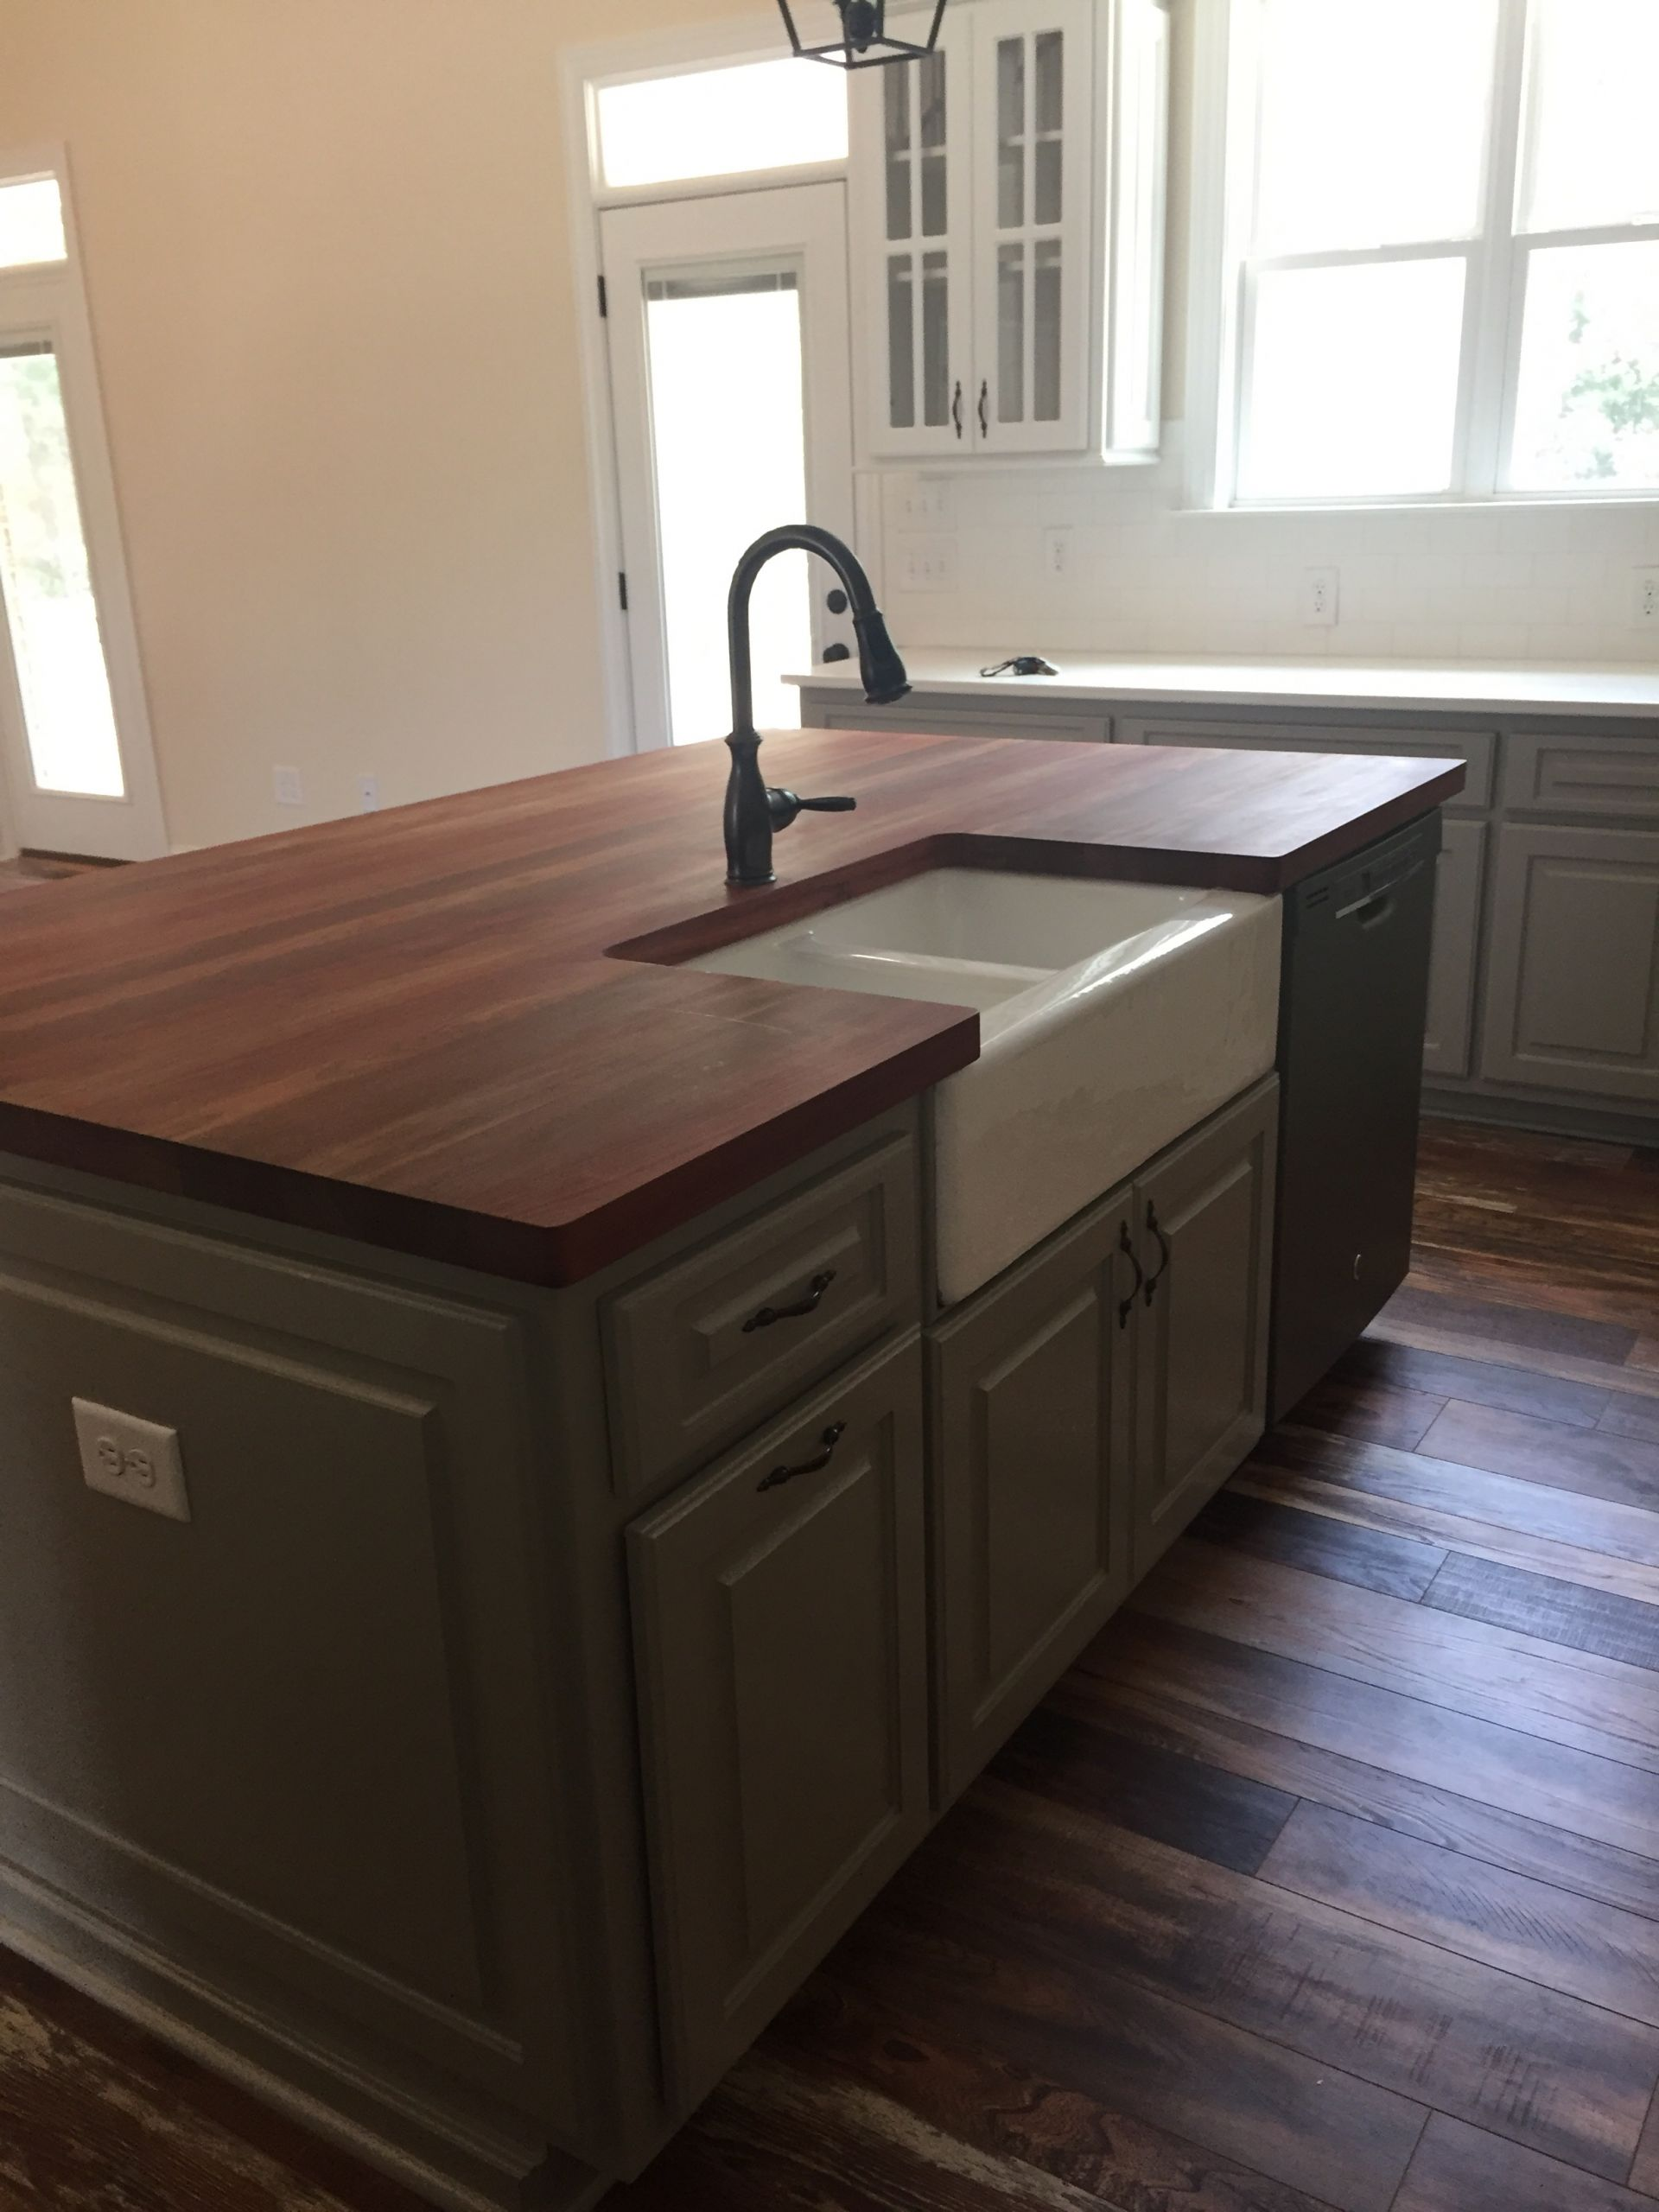 NC blogger Rebecca Lately shares an update on the butcher block island, along with a recommendationg for oiling it once a week.